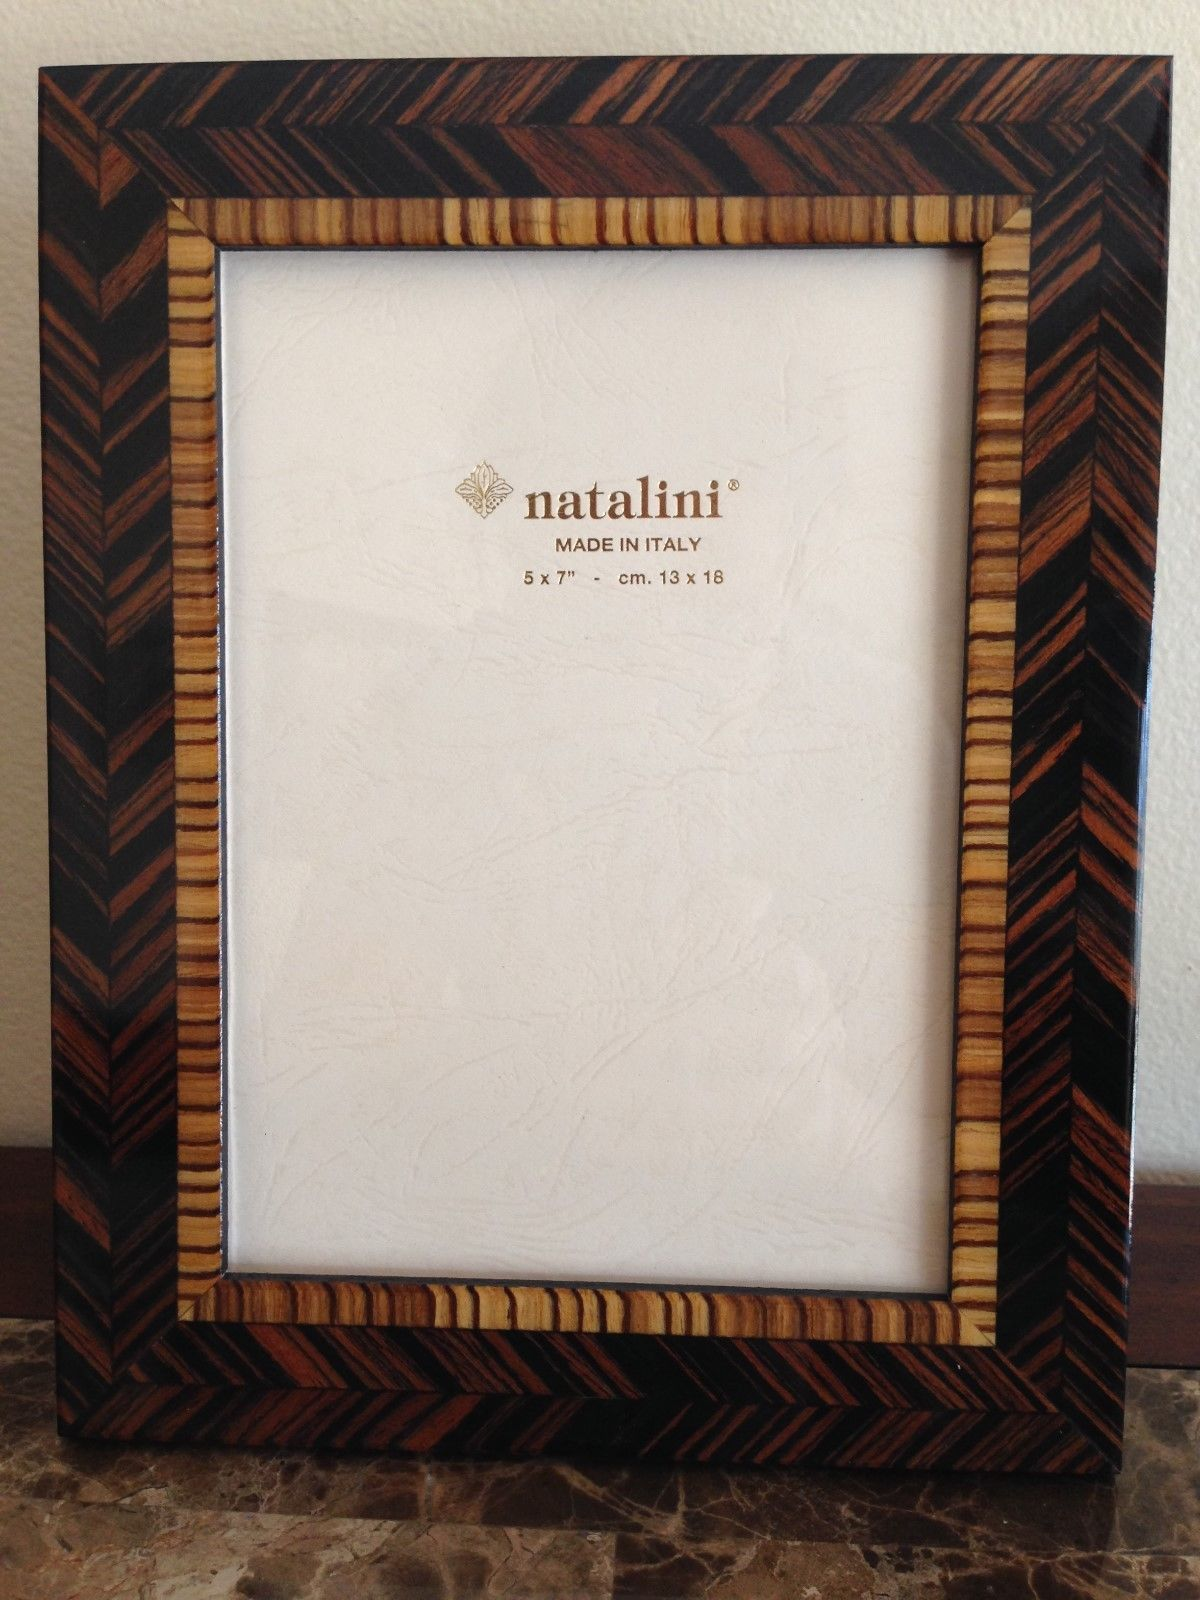 Natalini Hand Made in Italy Wood Marquetry Photo Picture Frame New